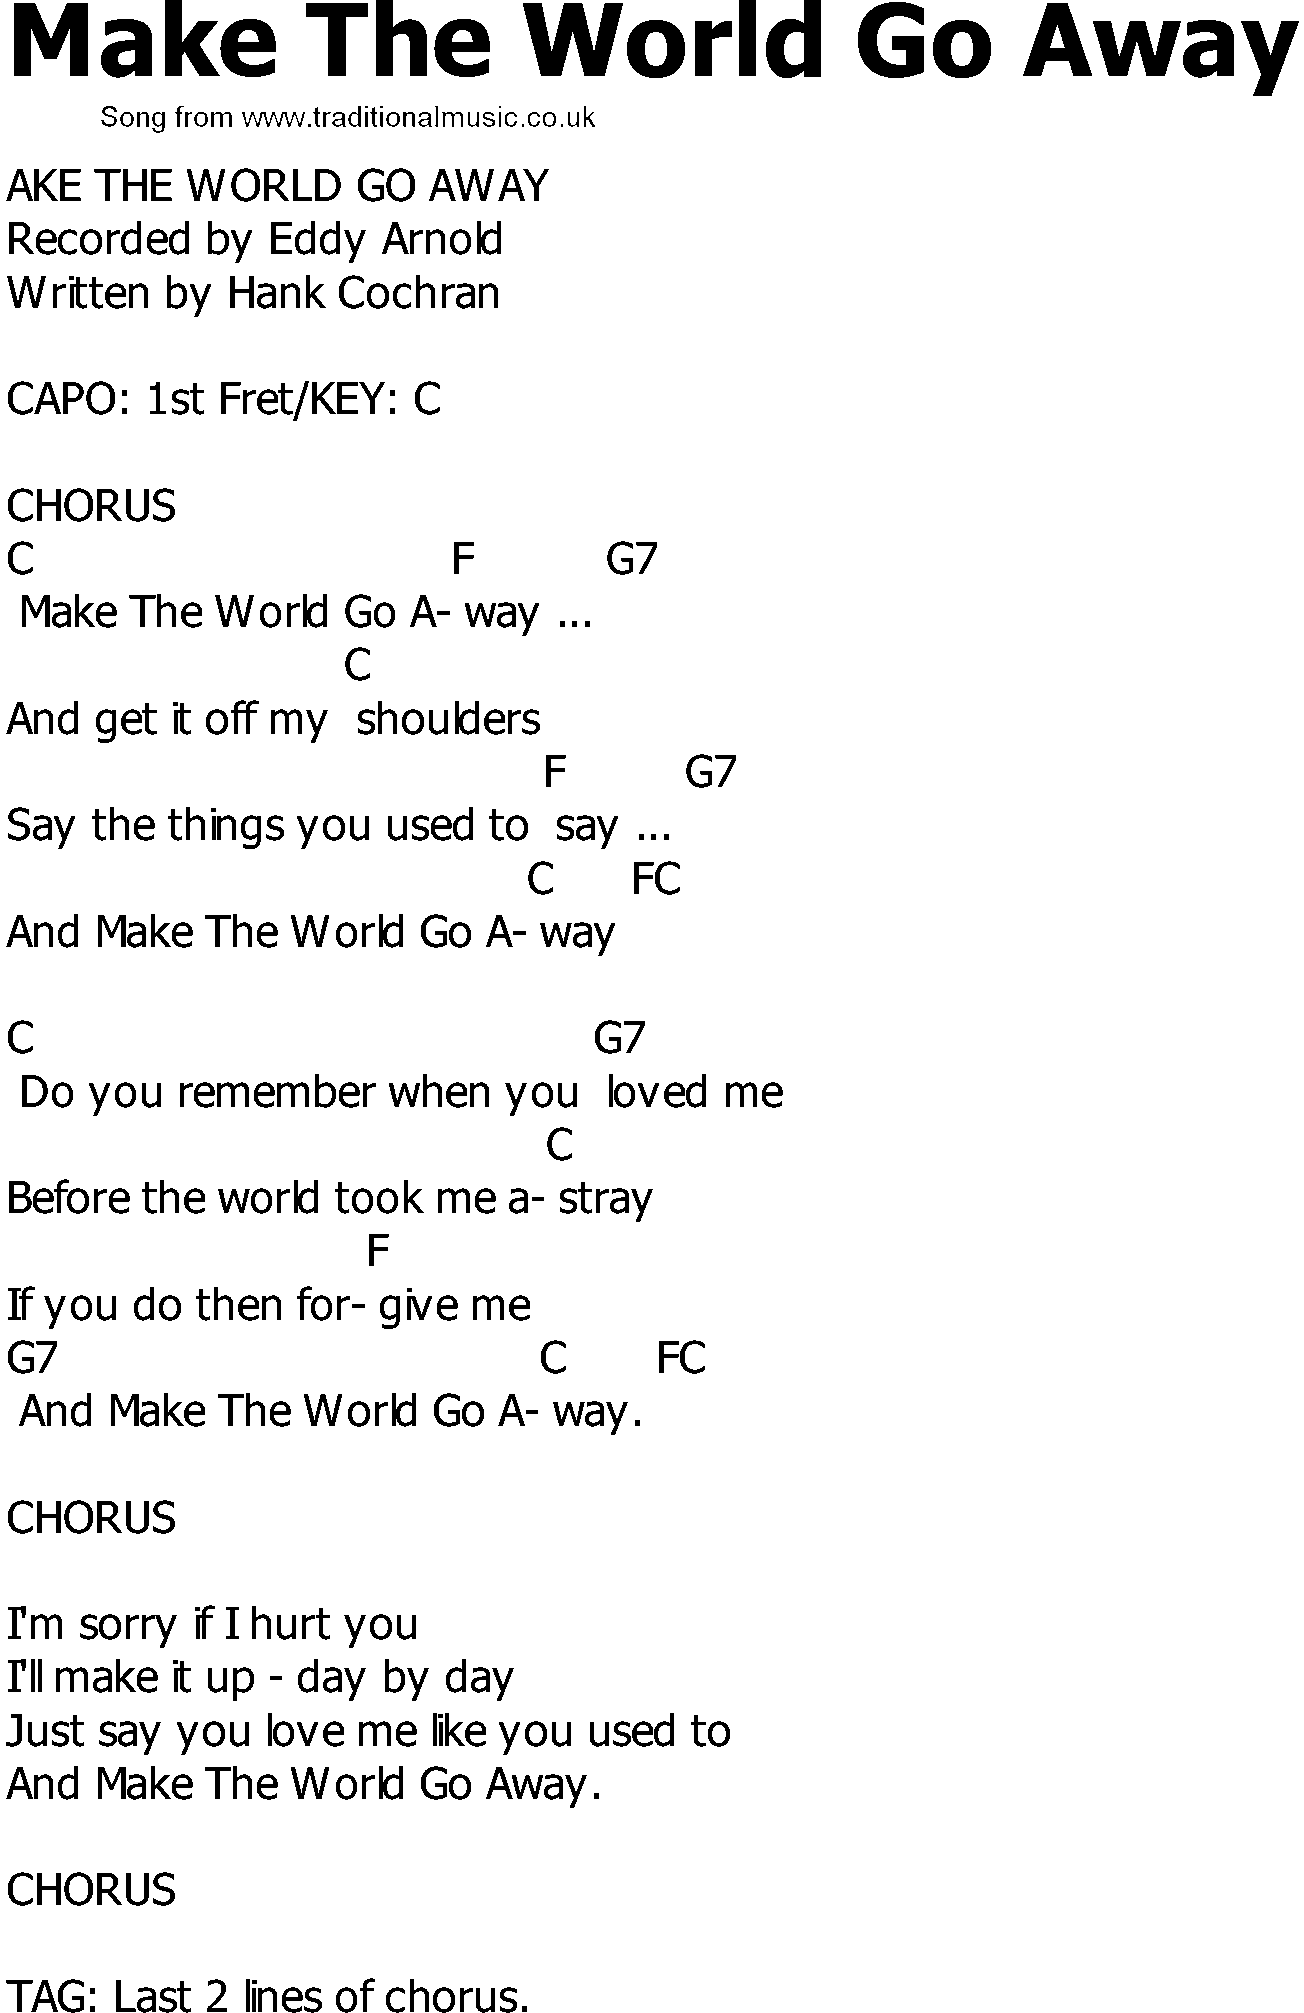 Old and in the way chords lyrics